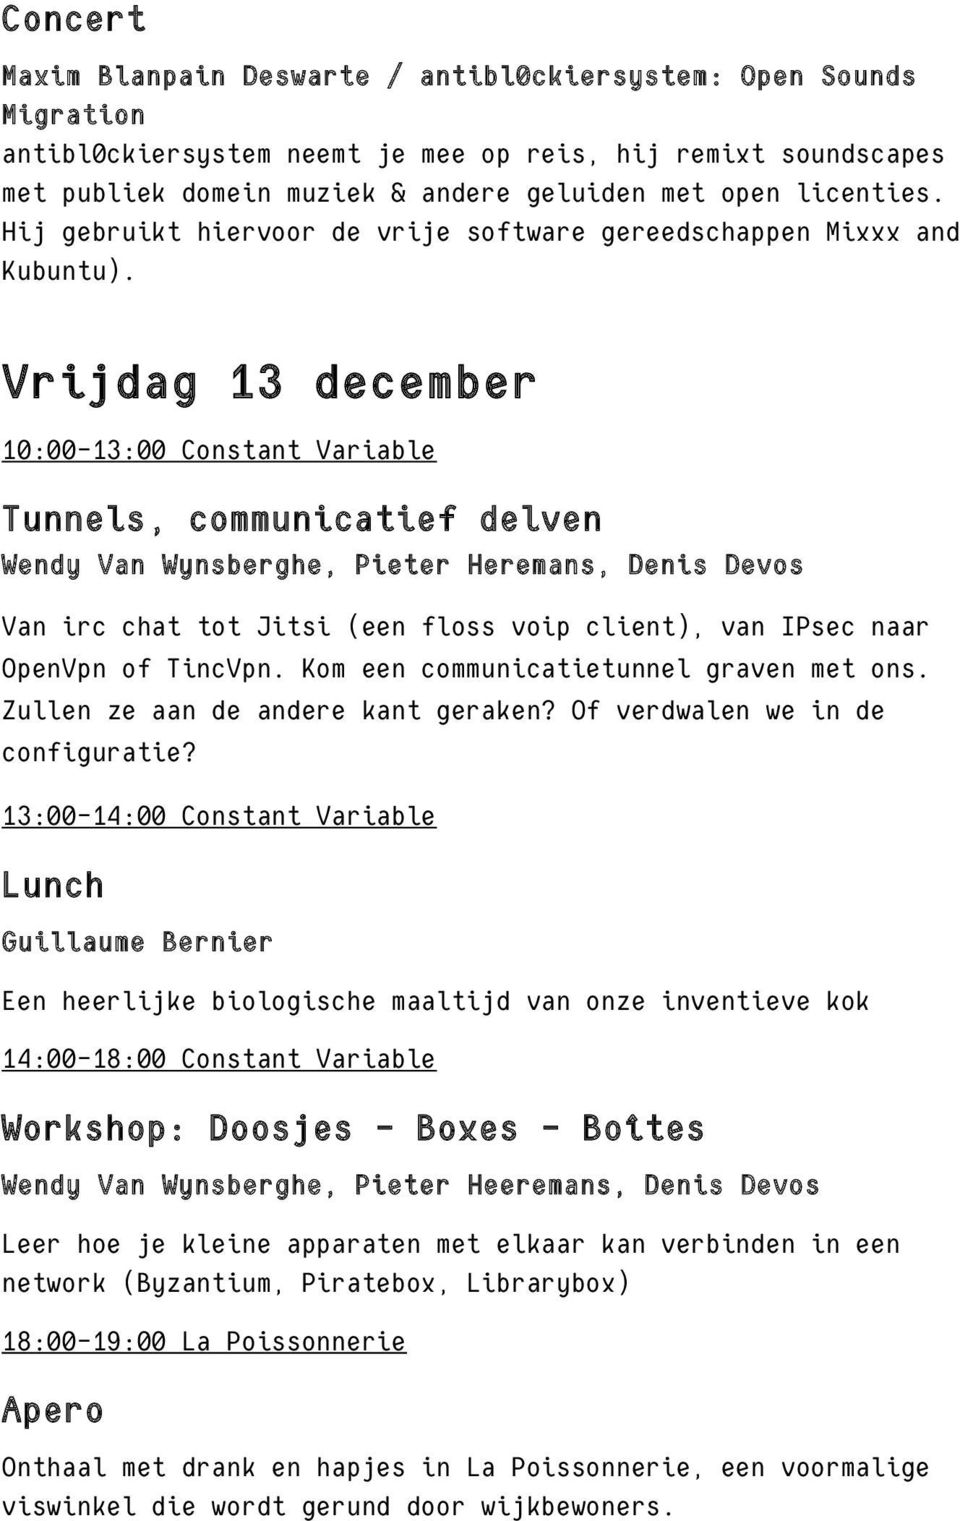 Vrijdag 13 december 10:00-13:00 Constant Variable Tunnels, communicatief delven Wendy Van Wynsberghe, Pieter Heremans, Denis Devos Van irc chat tot Jitsi (een floss voip client), van IPsec naar